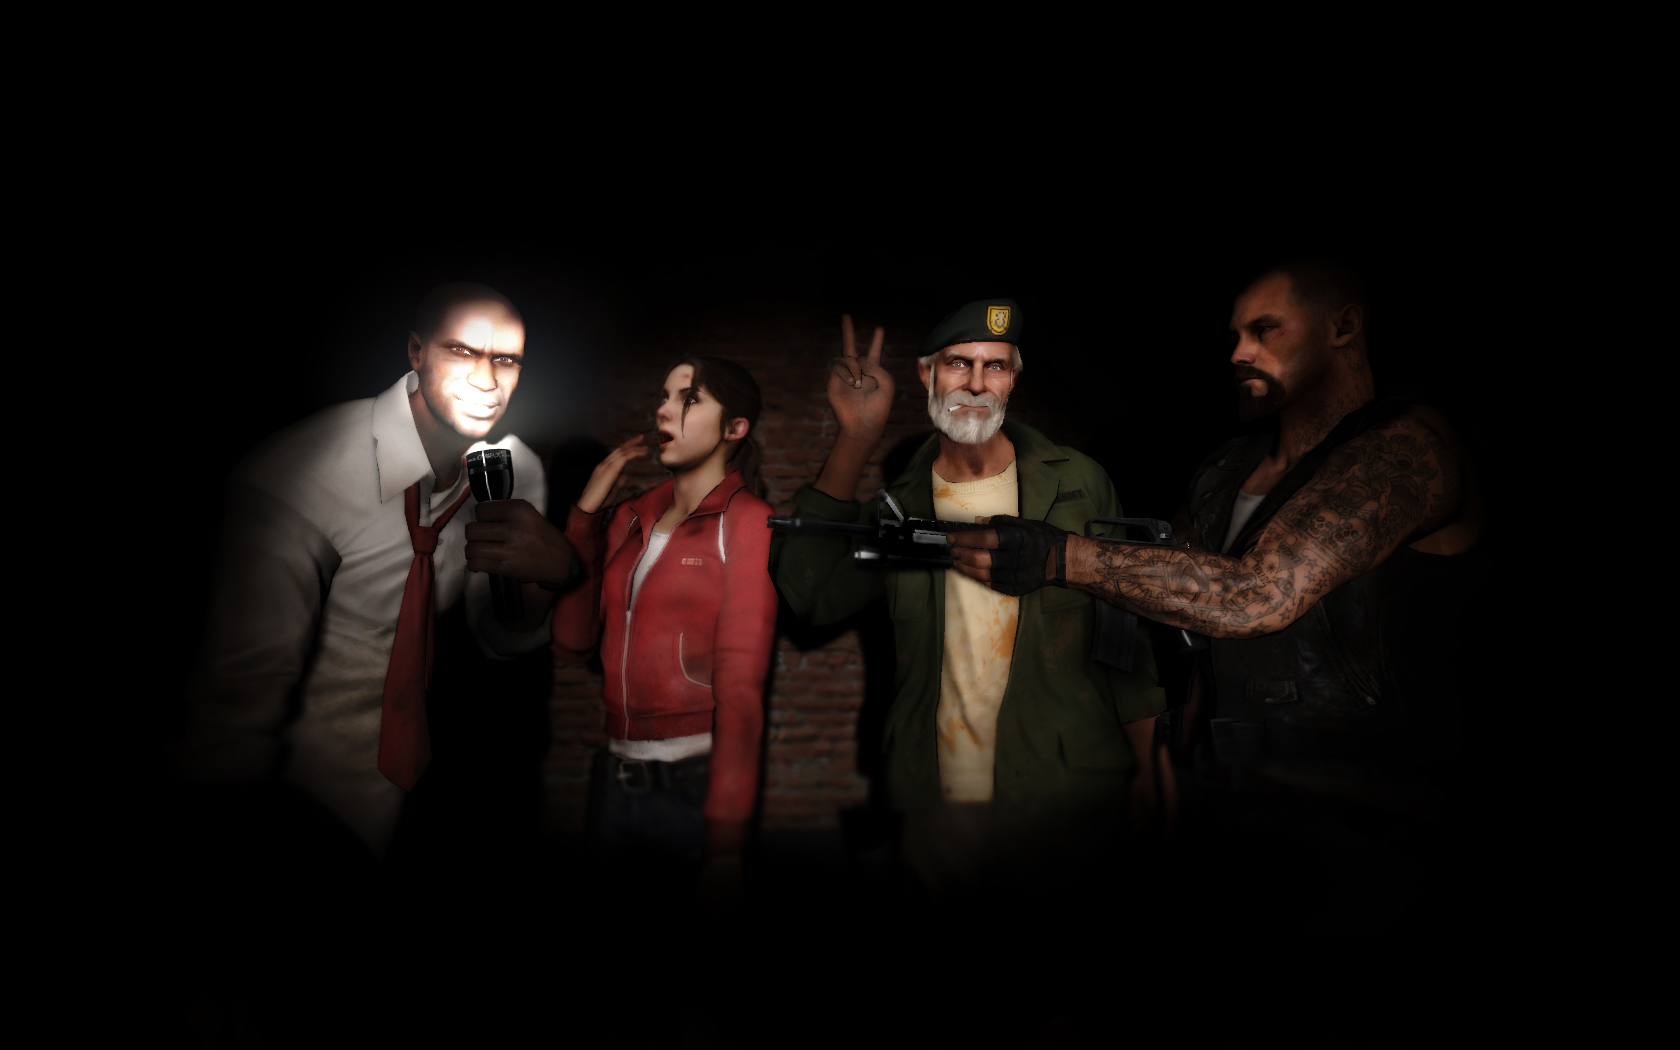 Left 4 Dead wallpaper by Razzik88 Left 4 Dead wallpaper by Razzik88